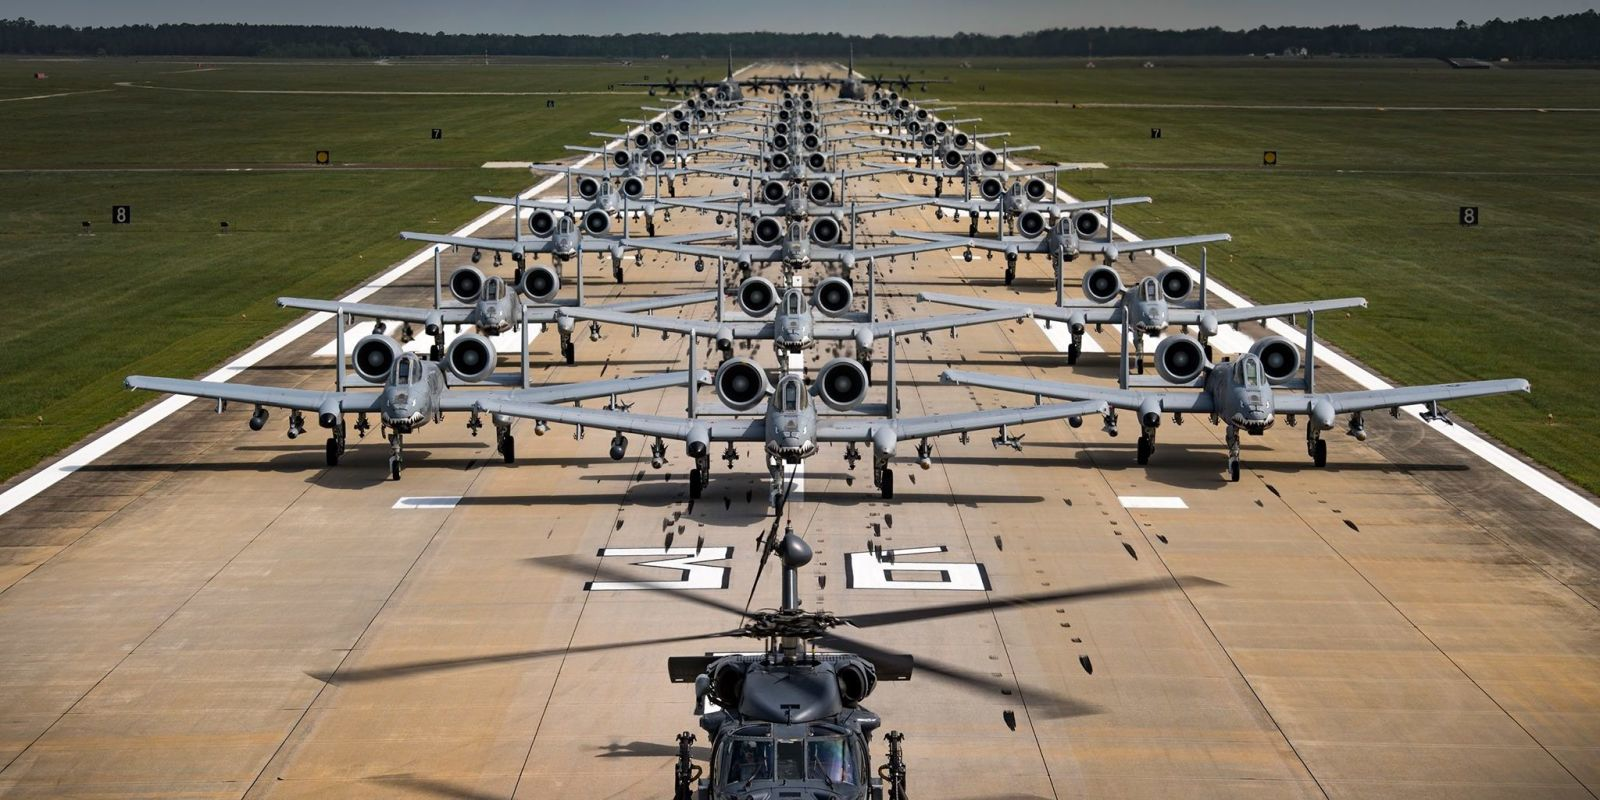 The Air Force Assembled 30 A10 Warthogs Just to Show That it Can